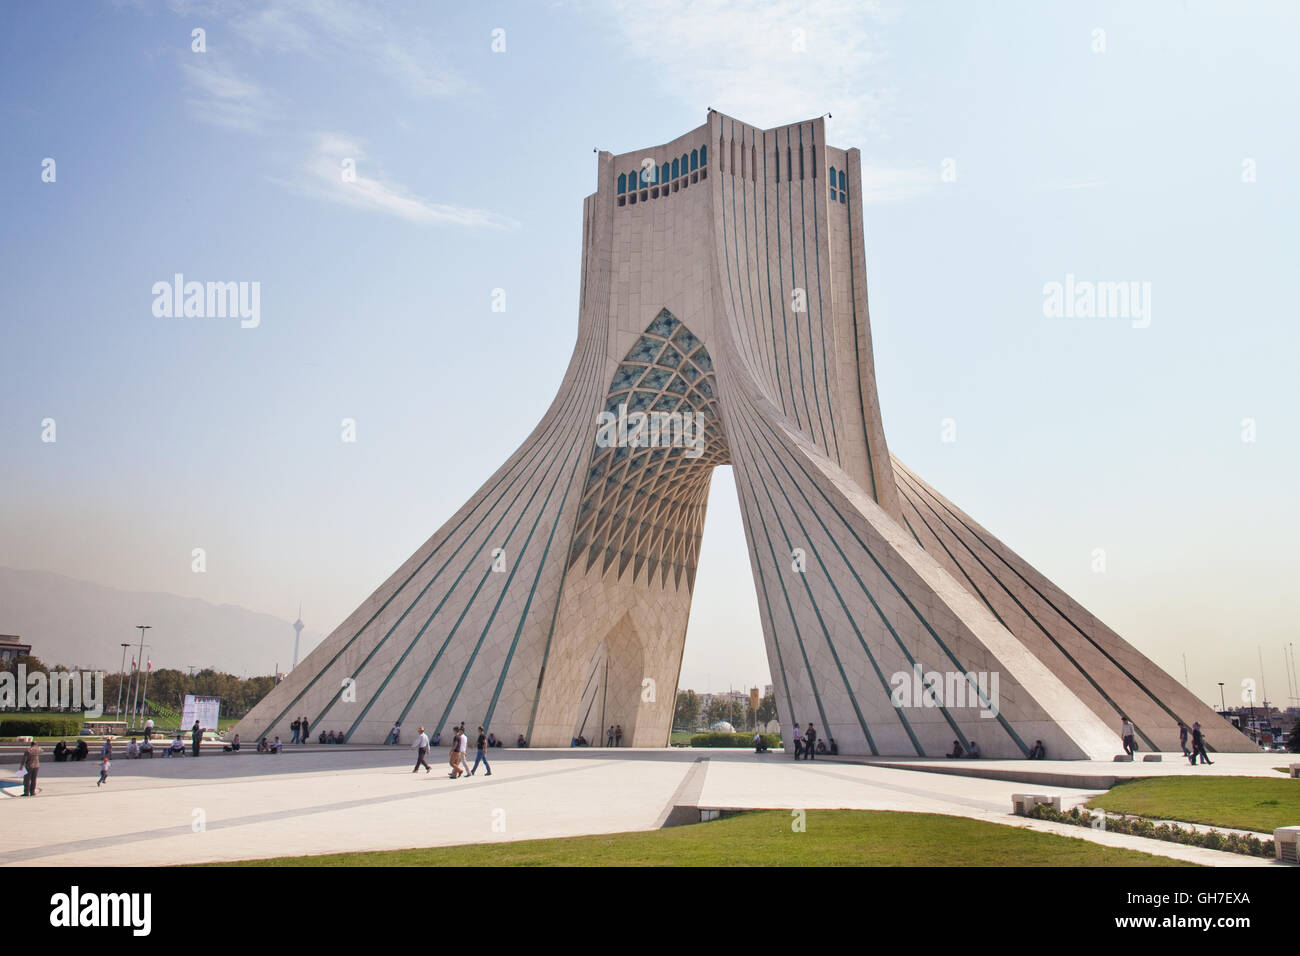 Azadi Tower, or The Freedom Tower of Tehran, Iran Stock Photo ...